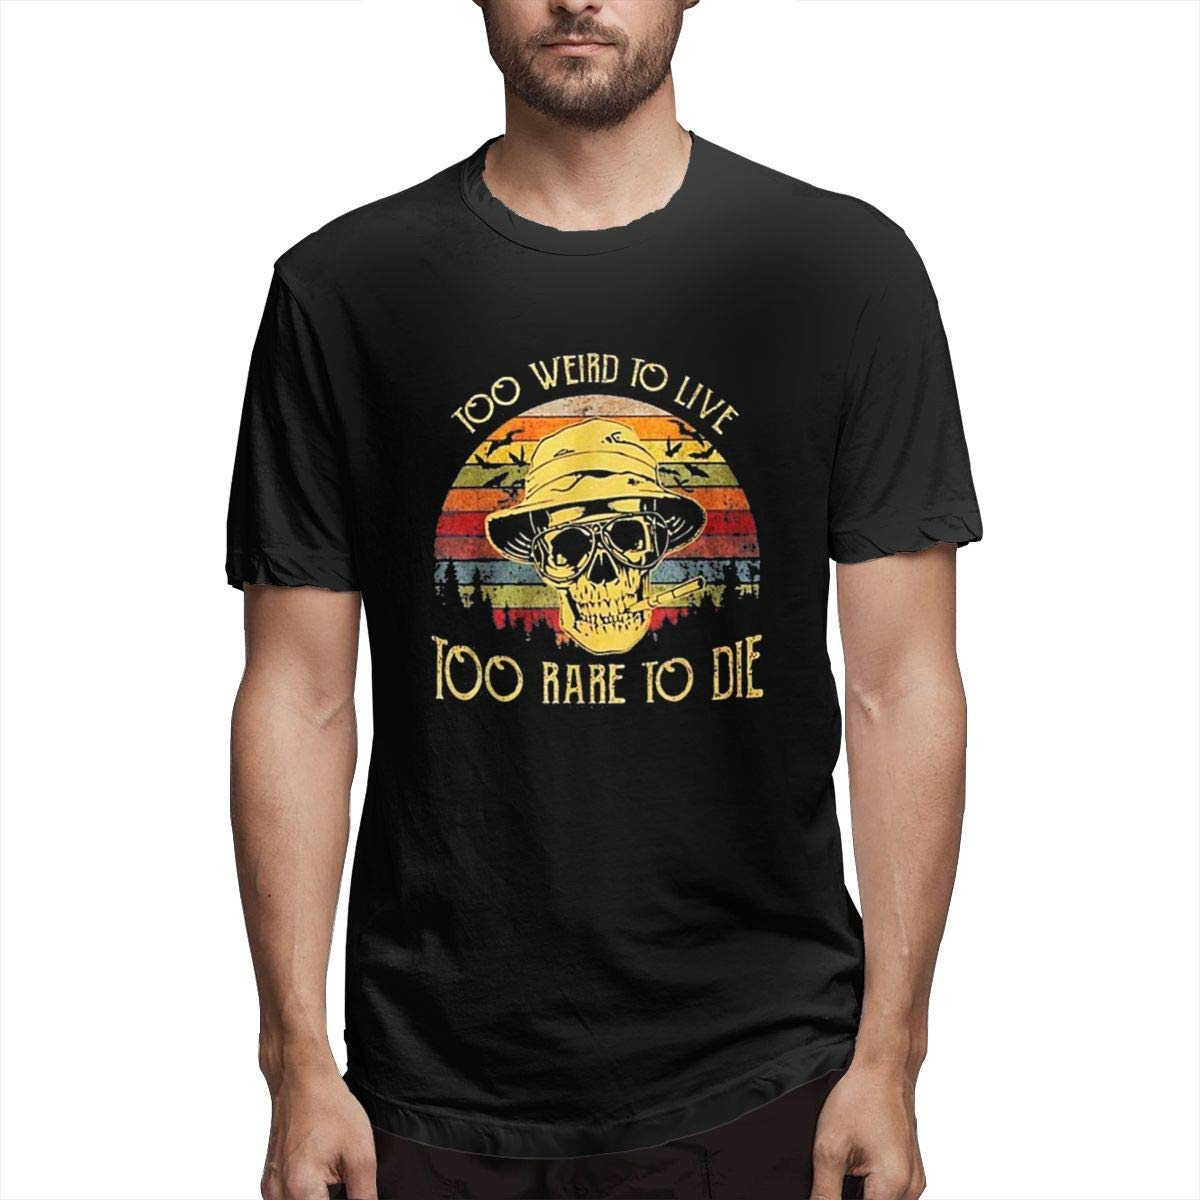 STARKLY Chic Fashion T Shirt,Too-Weird-to-Live-Too-Rare-to-Die Short Sleeve Round Neck Tee Casual Blouse Black